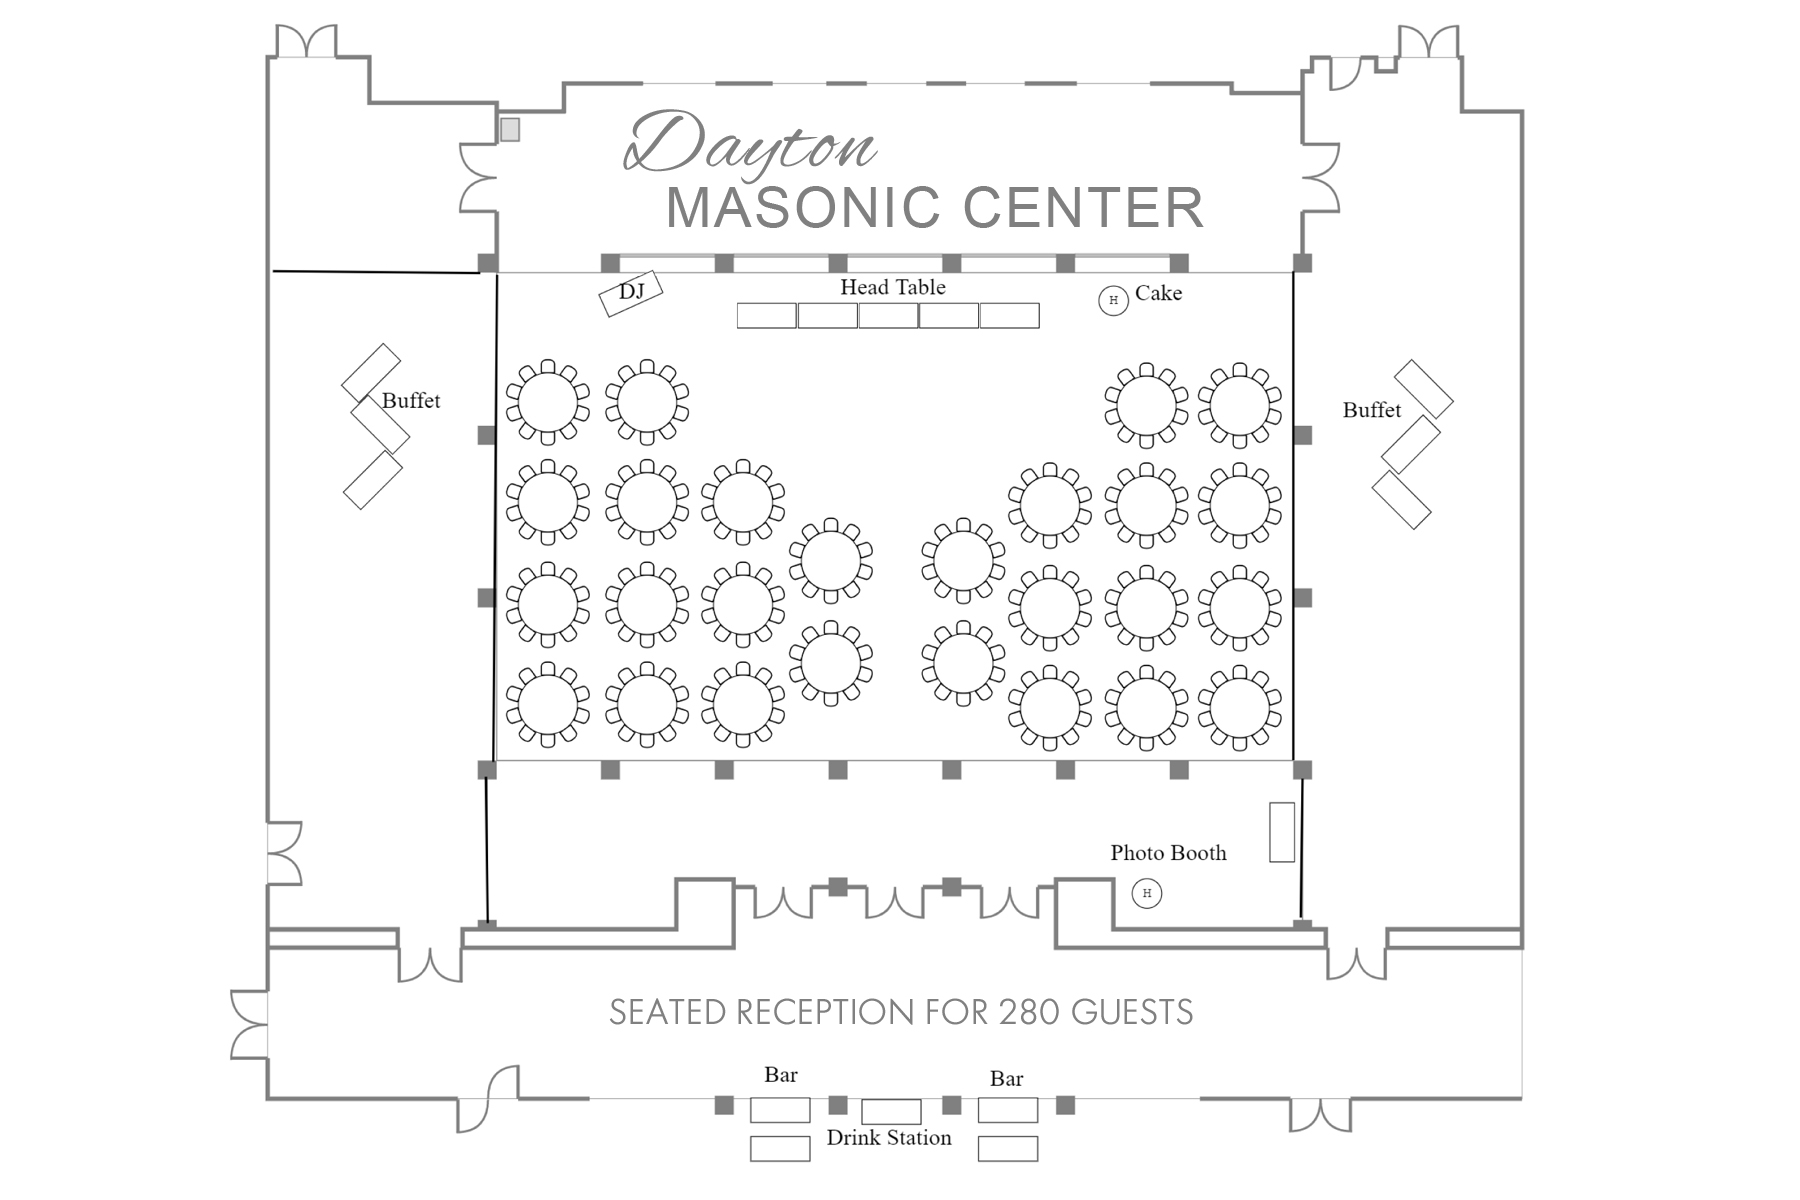 dayton-masonic-center-wedding-reception-floor-plan-0151.jpg